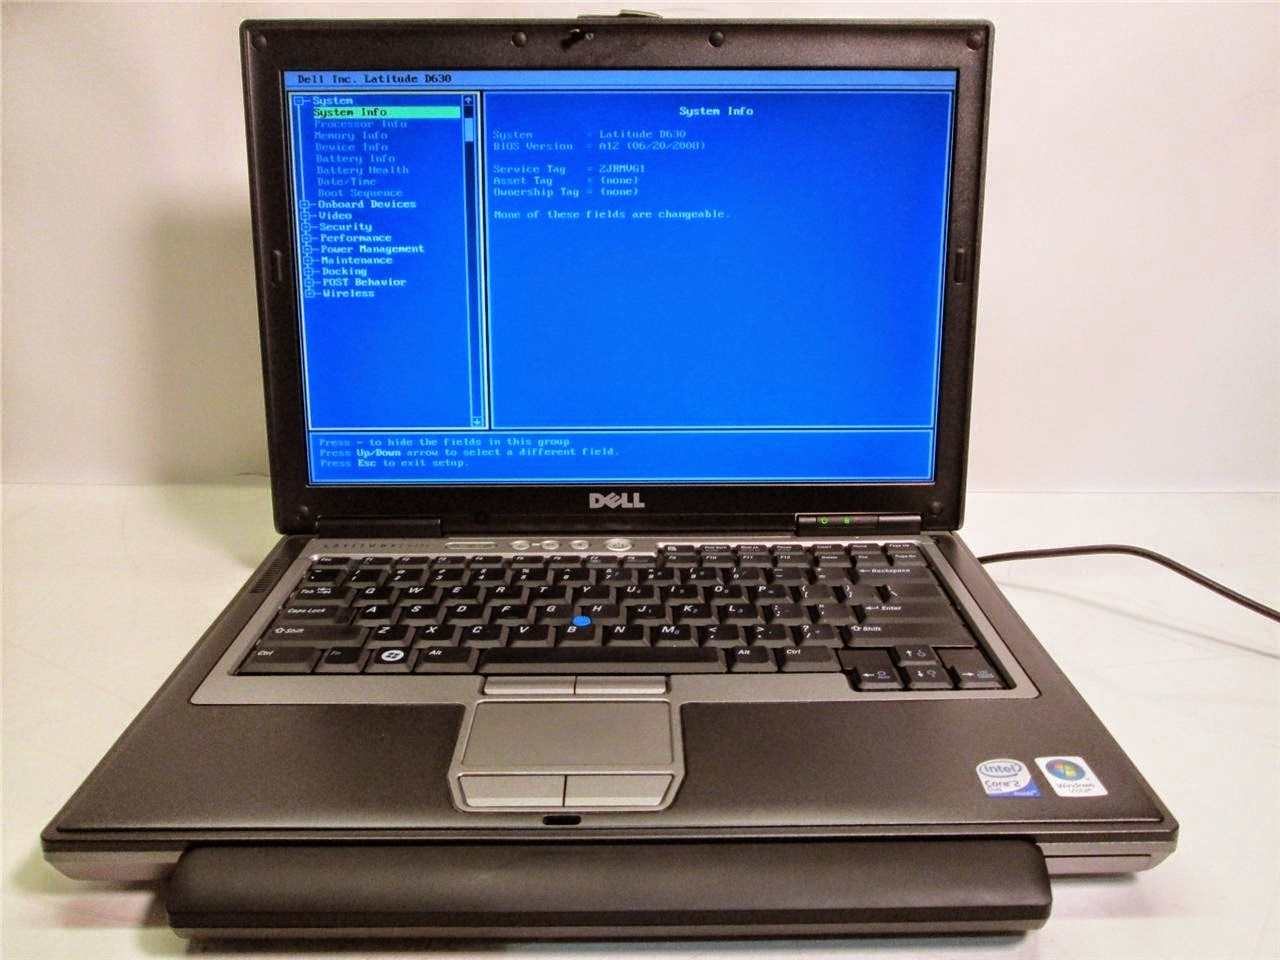 Dell D630 Drivers Download Xp